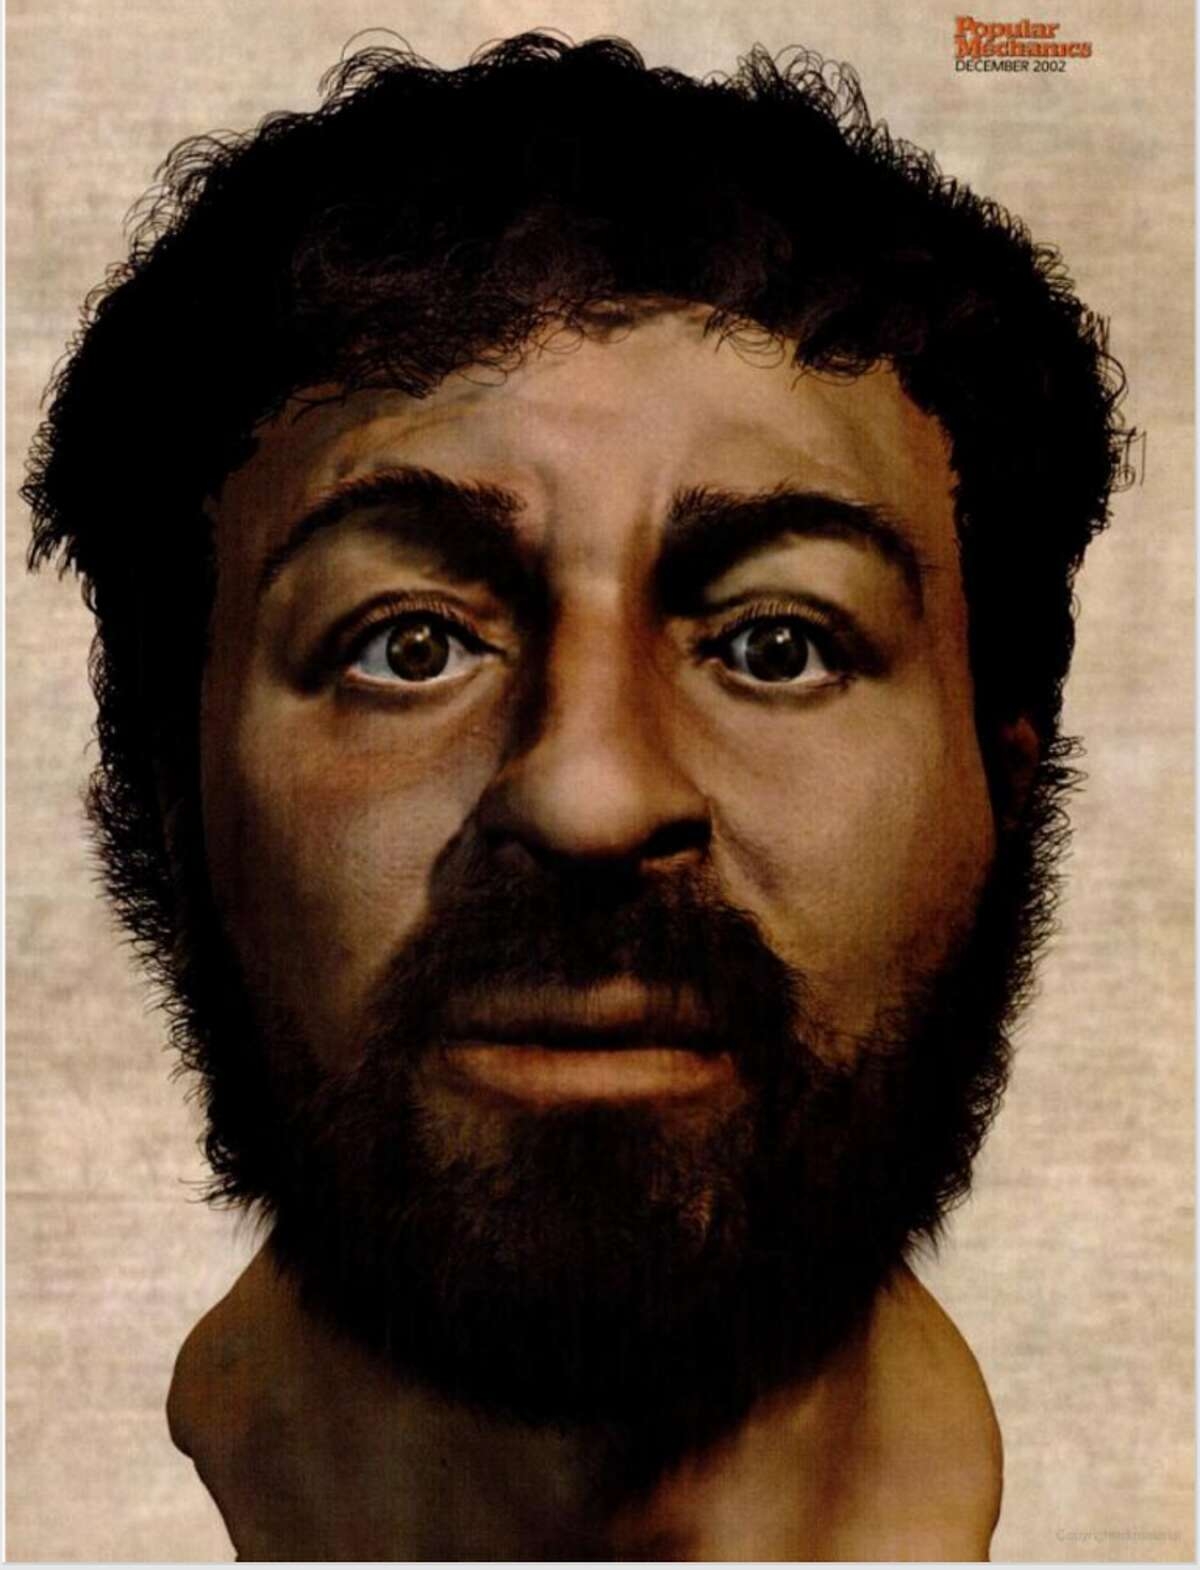 A team of scientists led by medical artist Richard Neave created what they think is a realistic depiction of Jesus Christ.